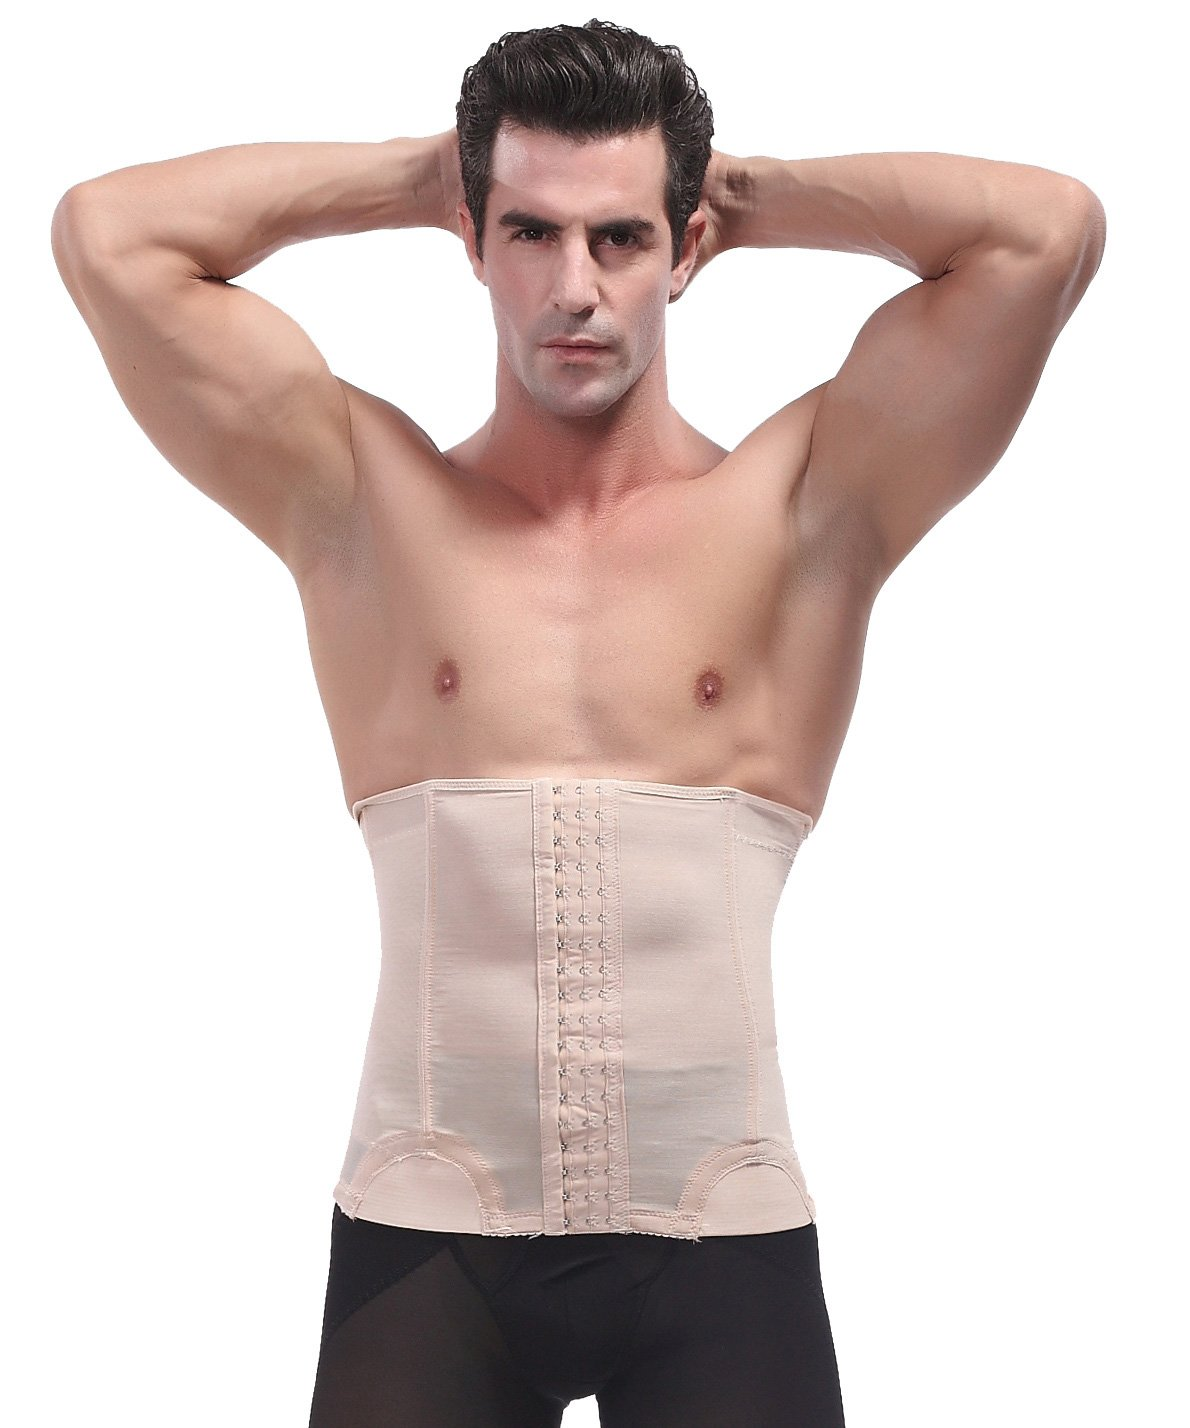 Panegy Memory Alloy Boning Waist Trimmer Girdle Compression Slimmer Belt Shapewear for Men Size XL White by Panegy